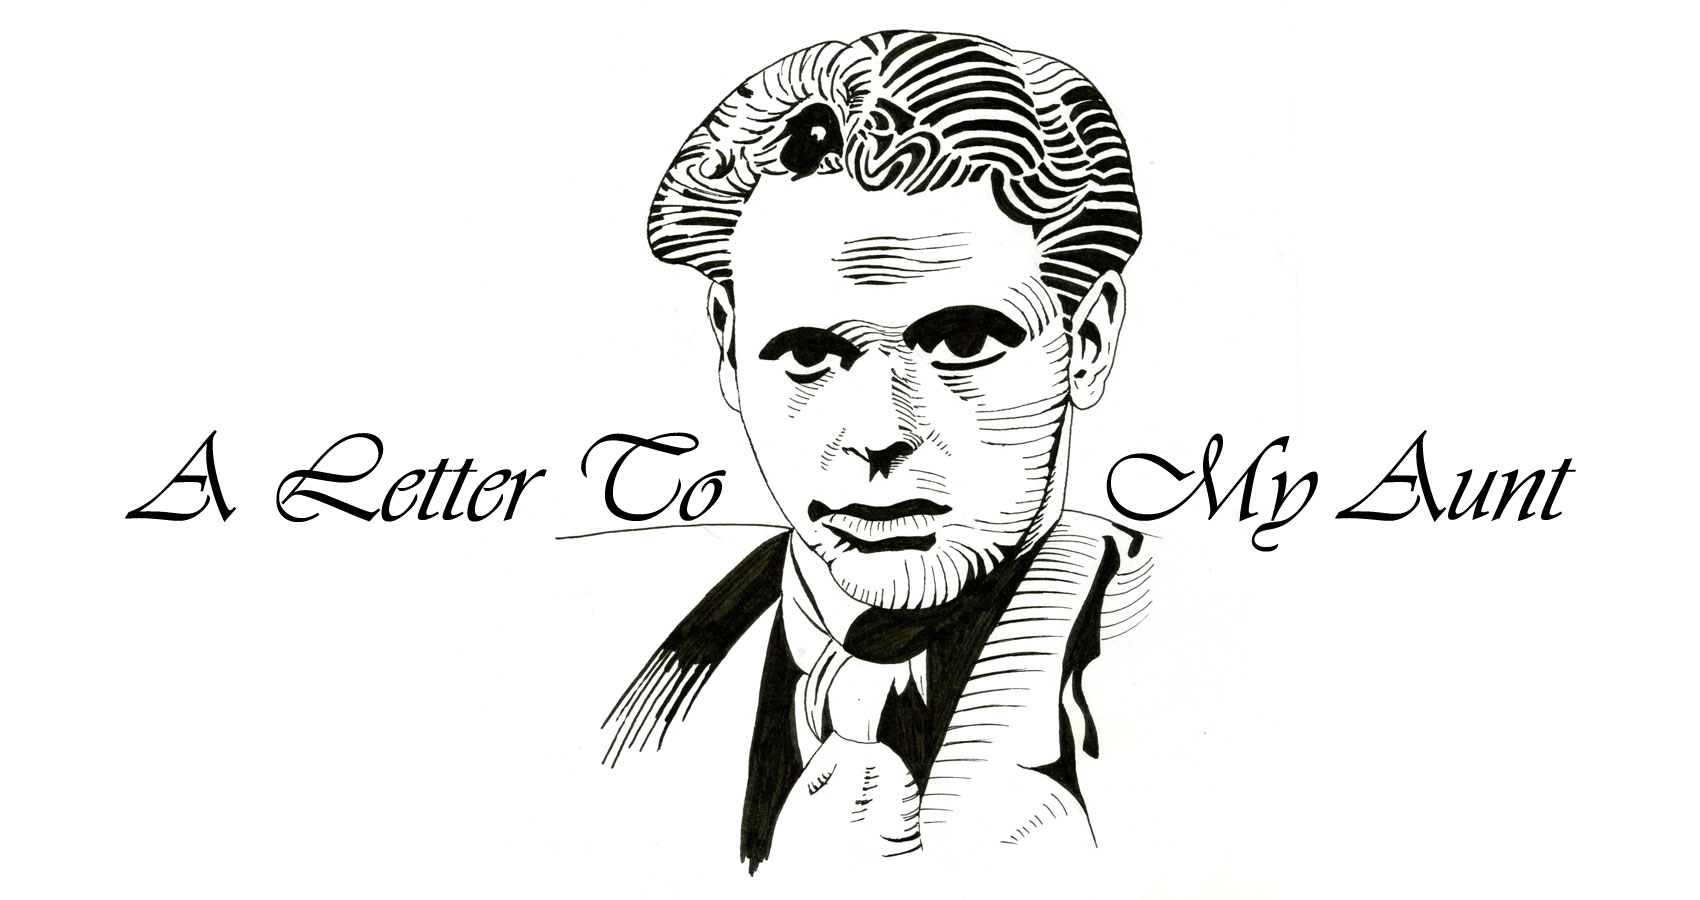 A Letter To My Aunt by Dylan Thomas at Spillwords.com